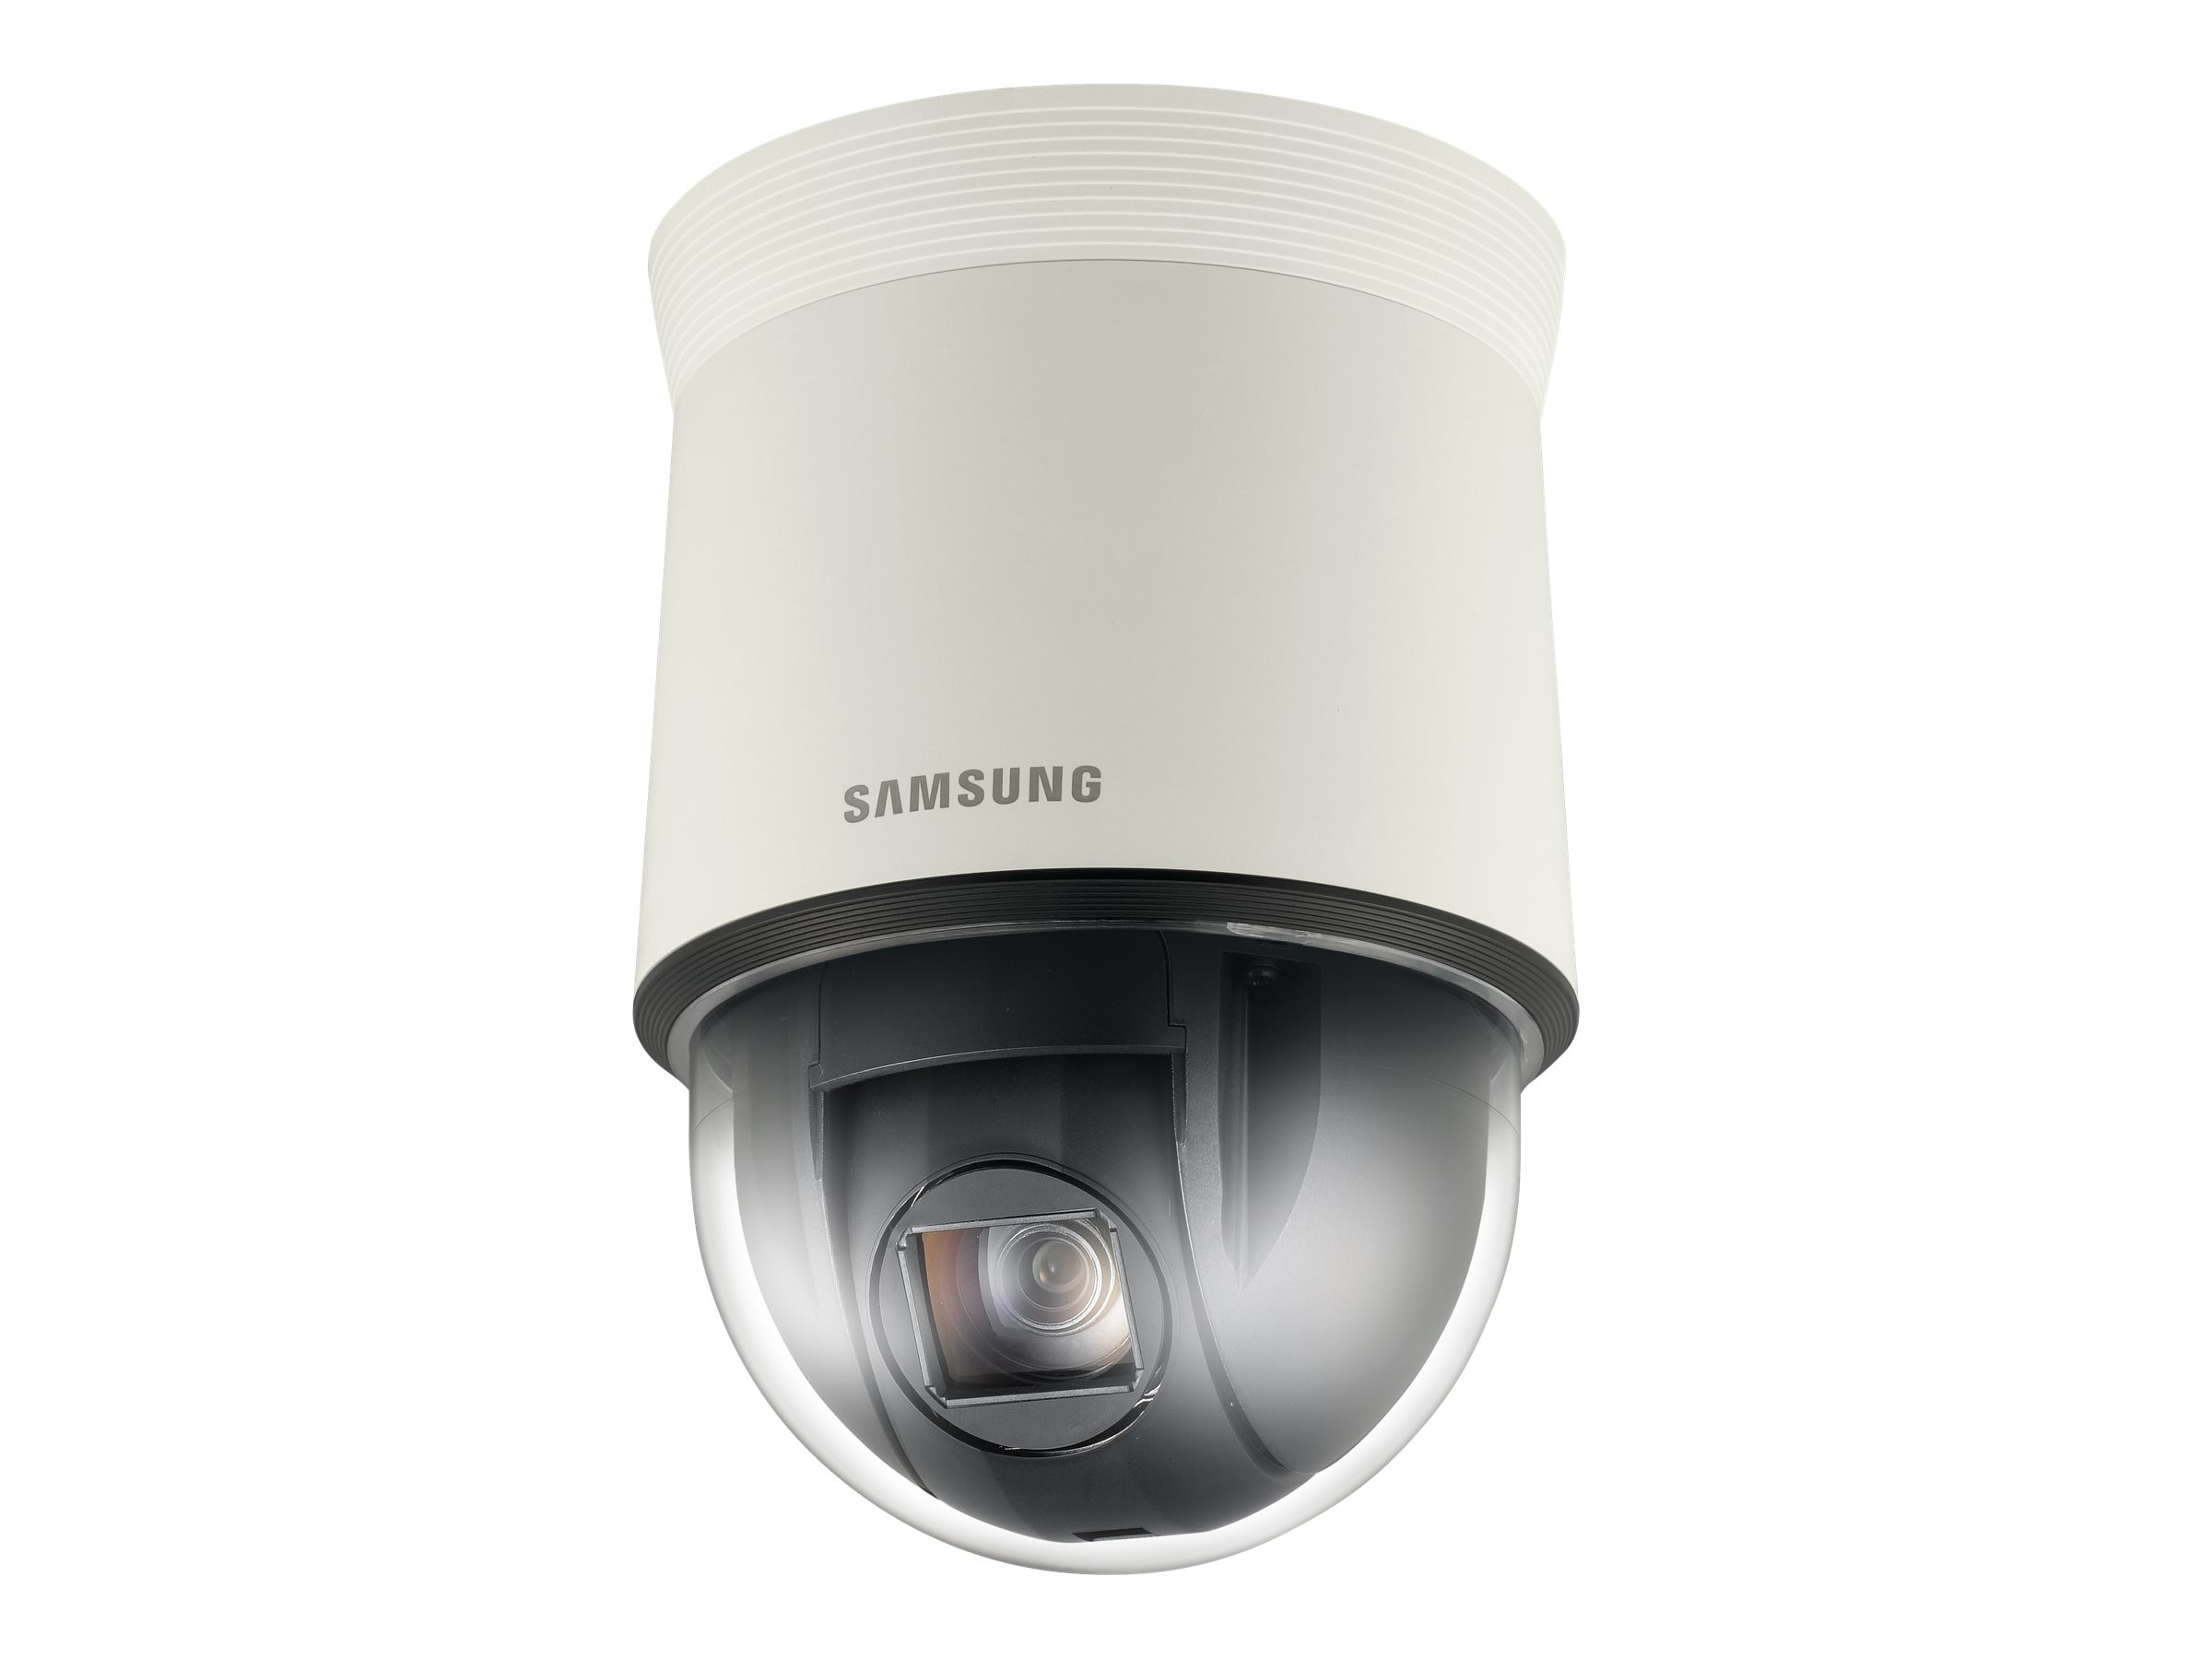 Samsung 1.3MP HD 23x Network PTZ Dome Camera, SNP-L5233